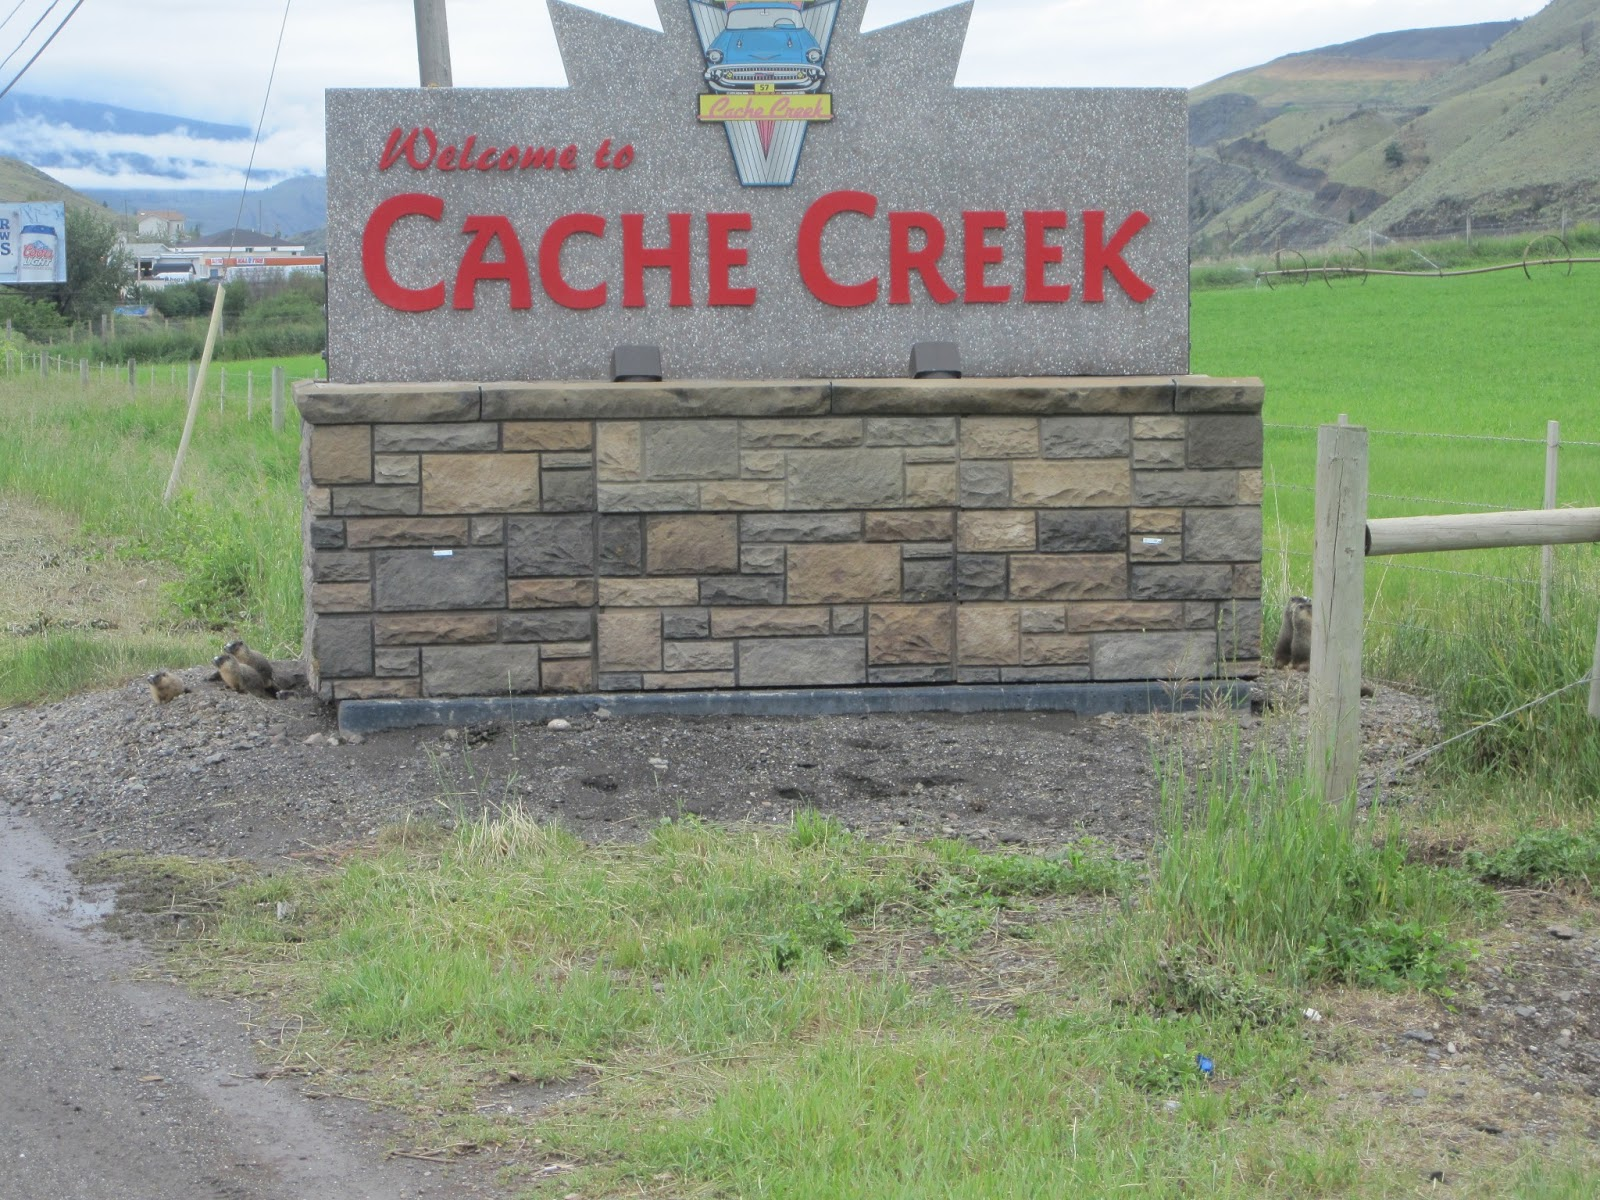 Flood fears ease in Cache Creek - for now